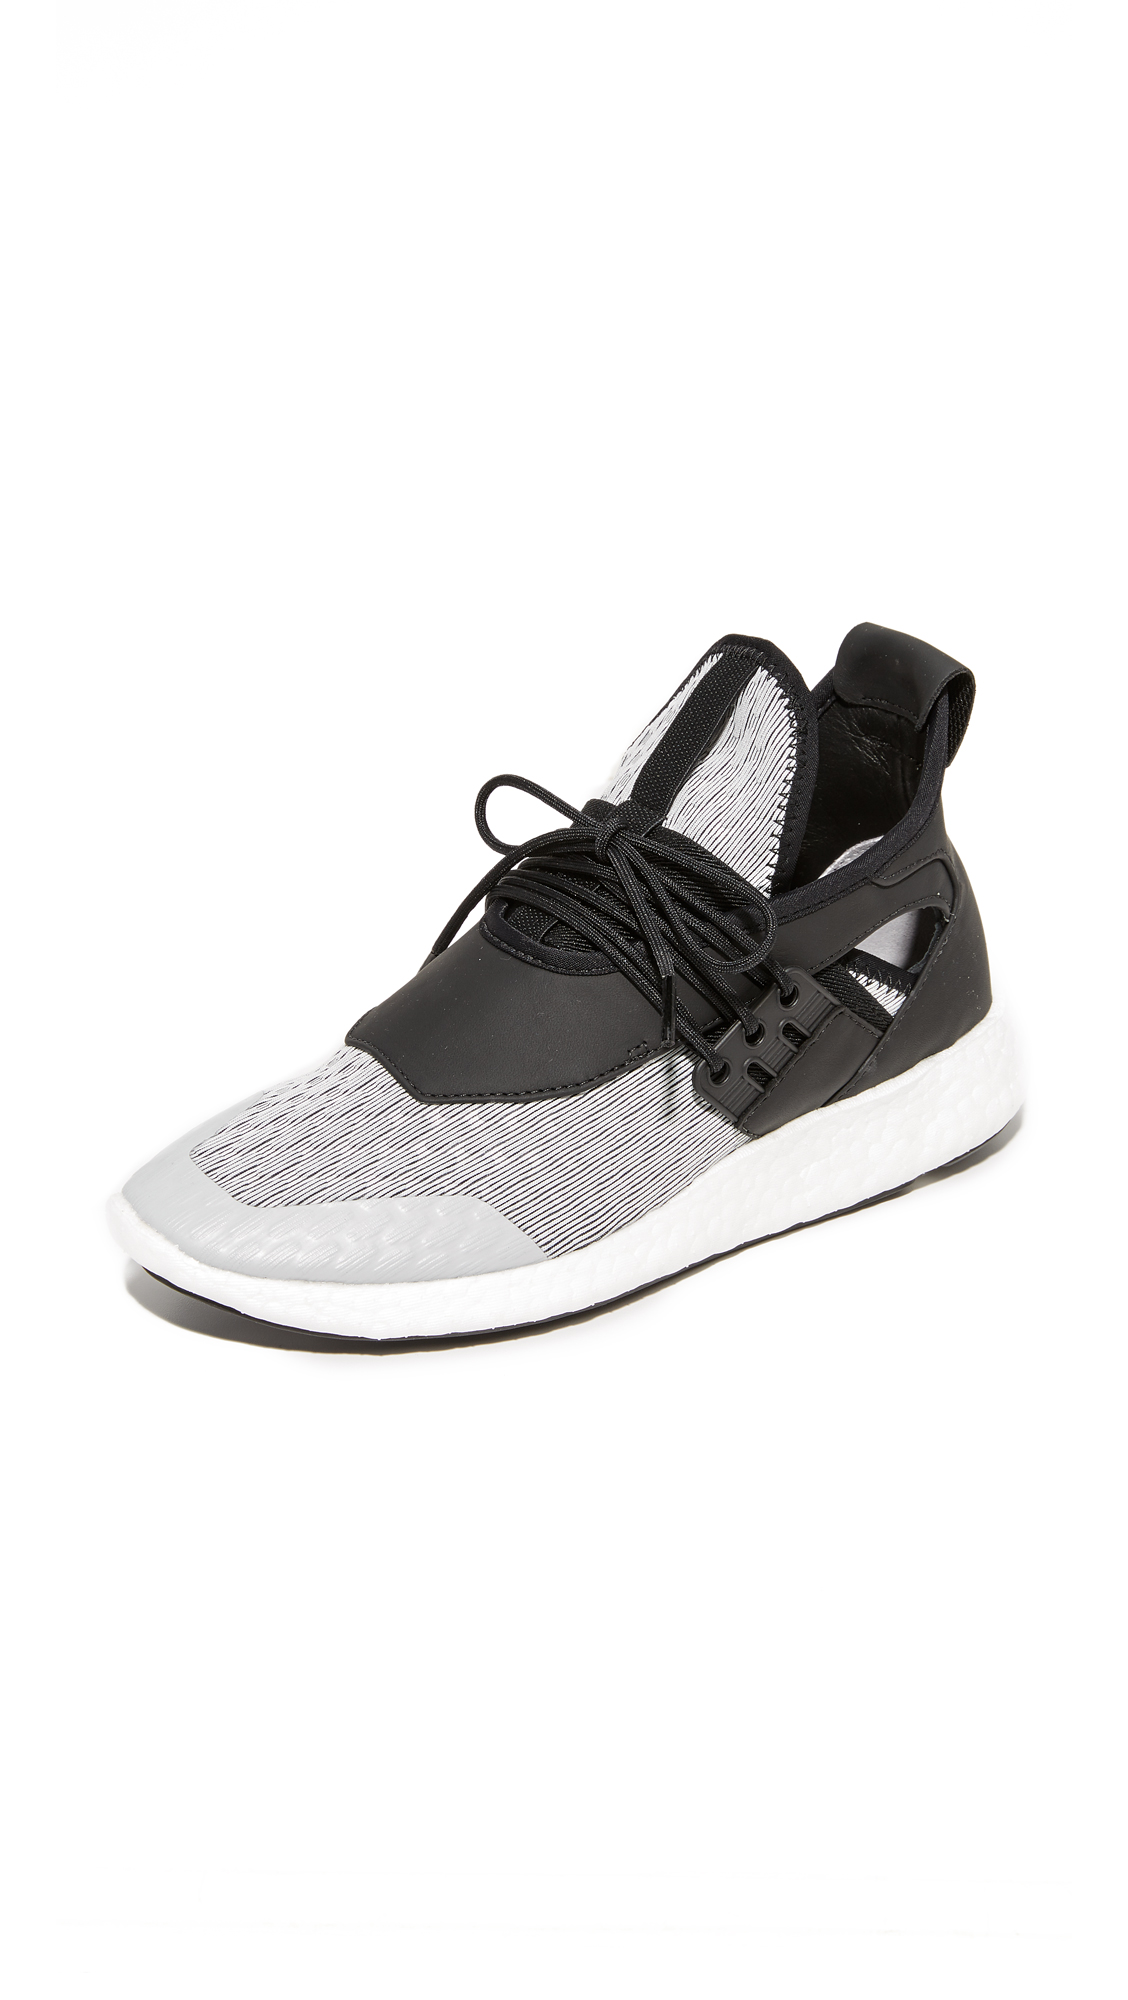 Y-3 Y-3 Elle Run Sneakers - Sheer Grey/Core Black